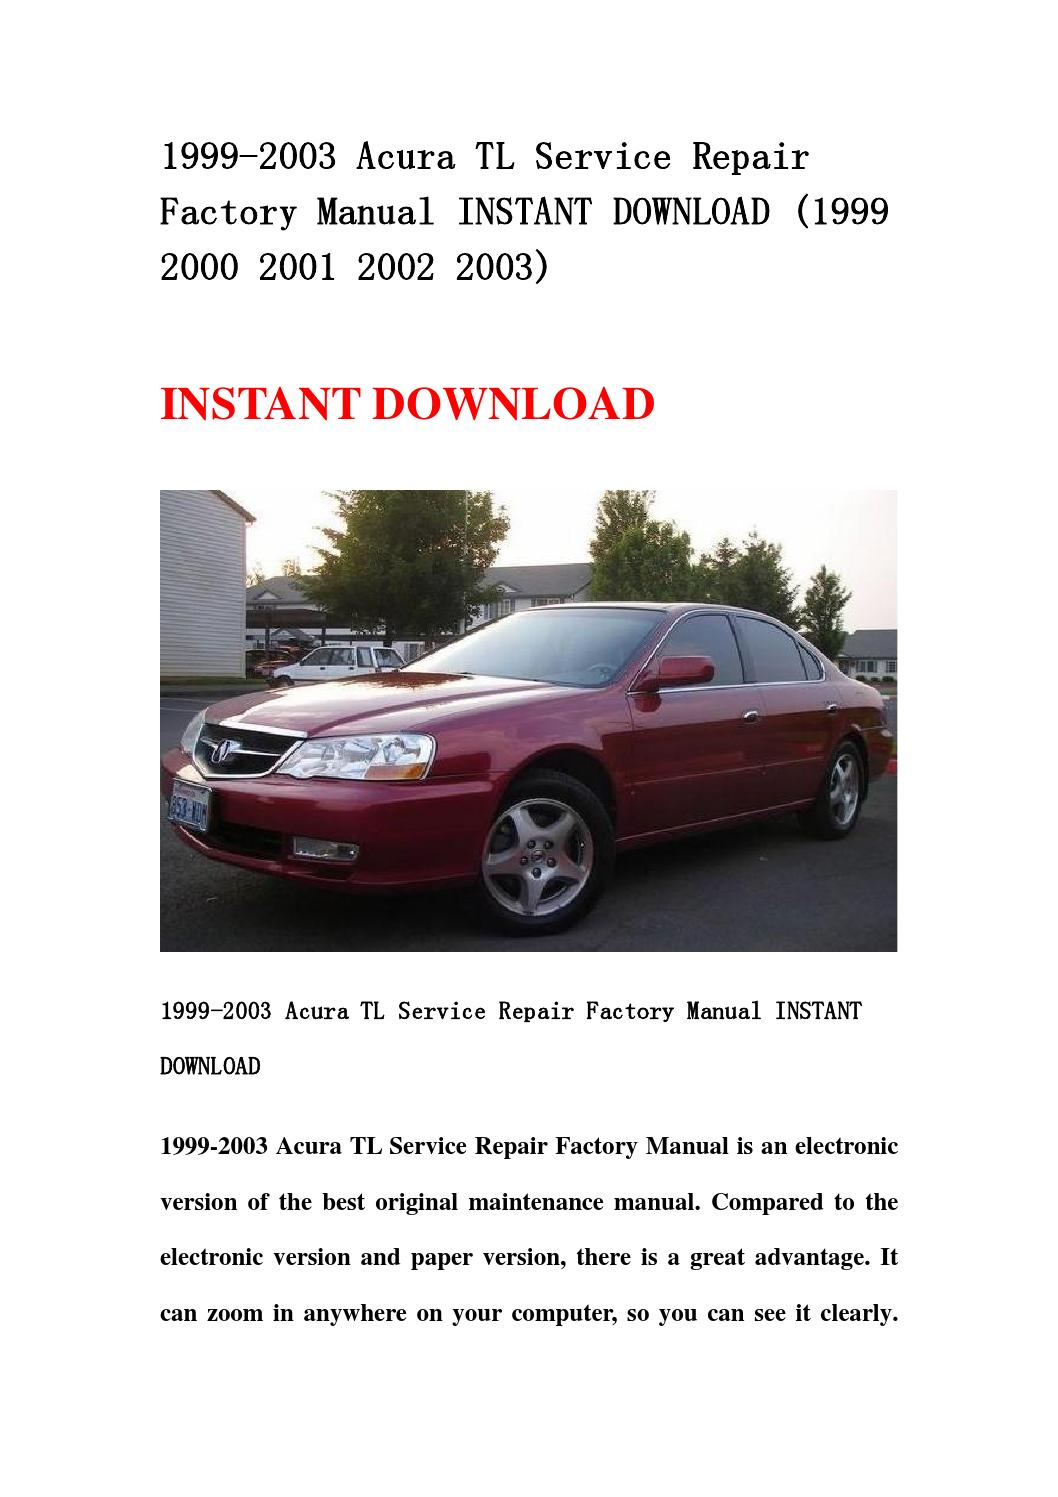 2000 acura tl repair manual